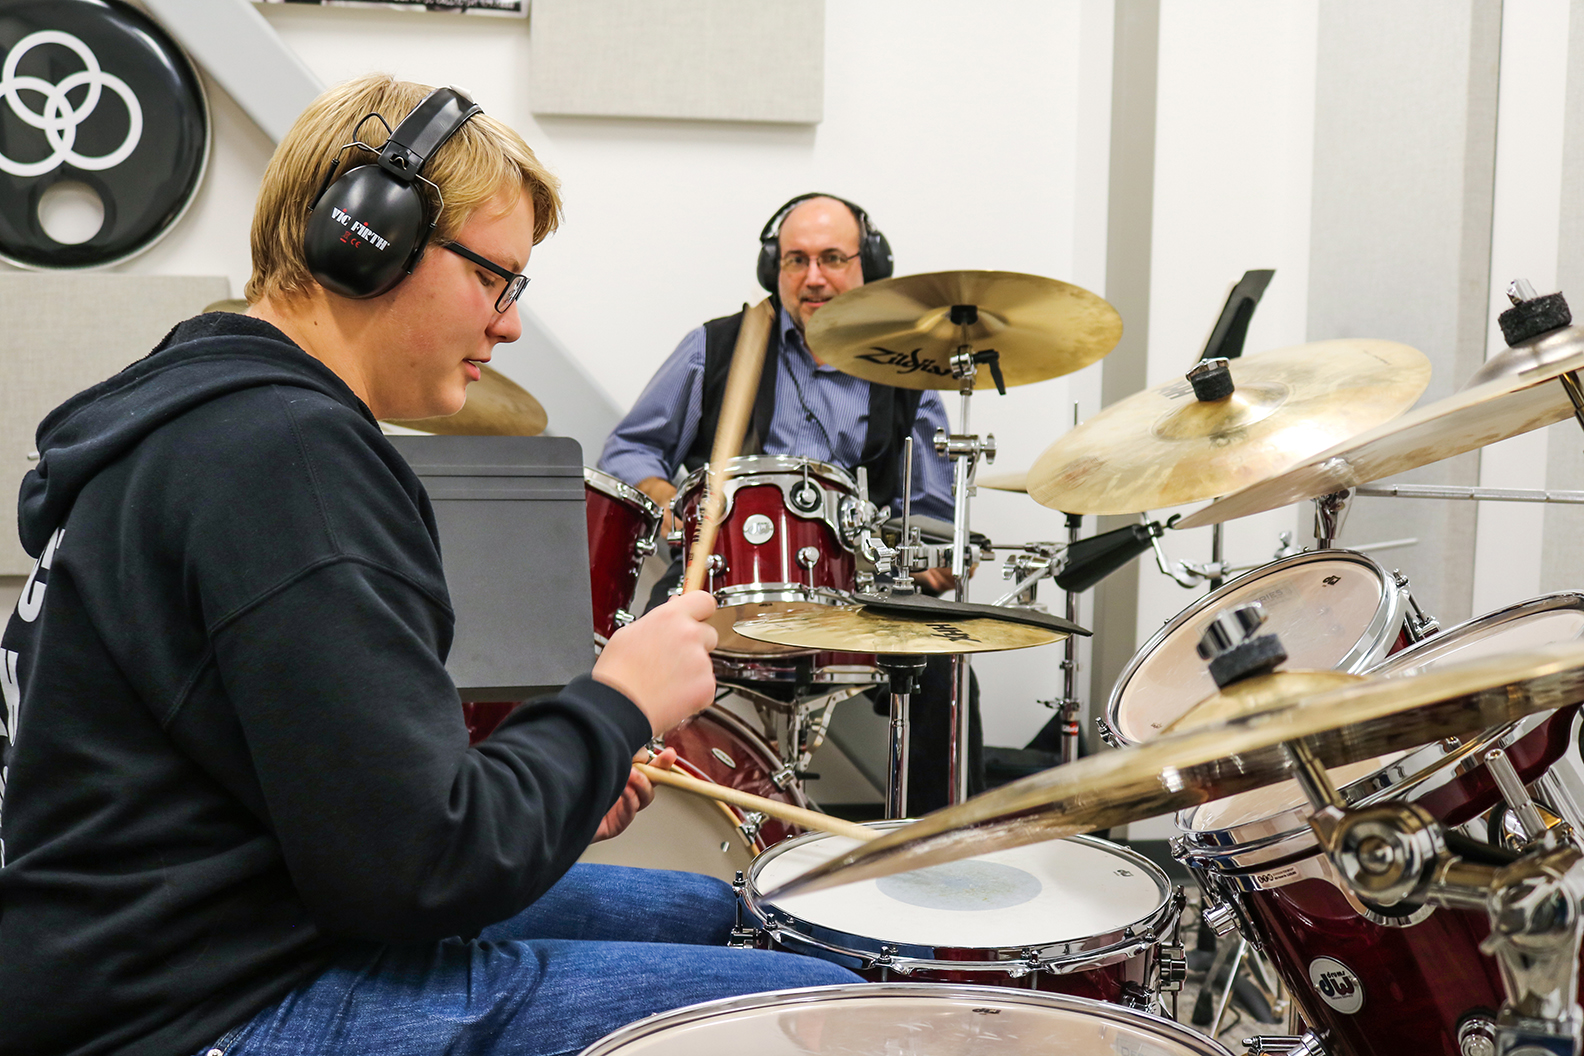 Bobby_Leidhecker_teaching_drum_lesson_5